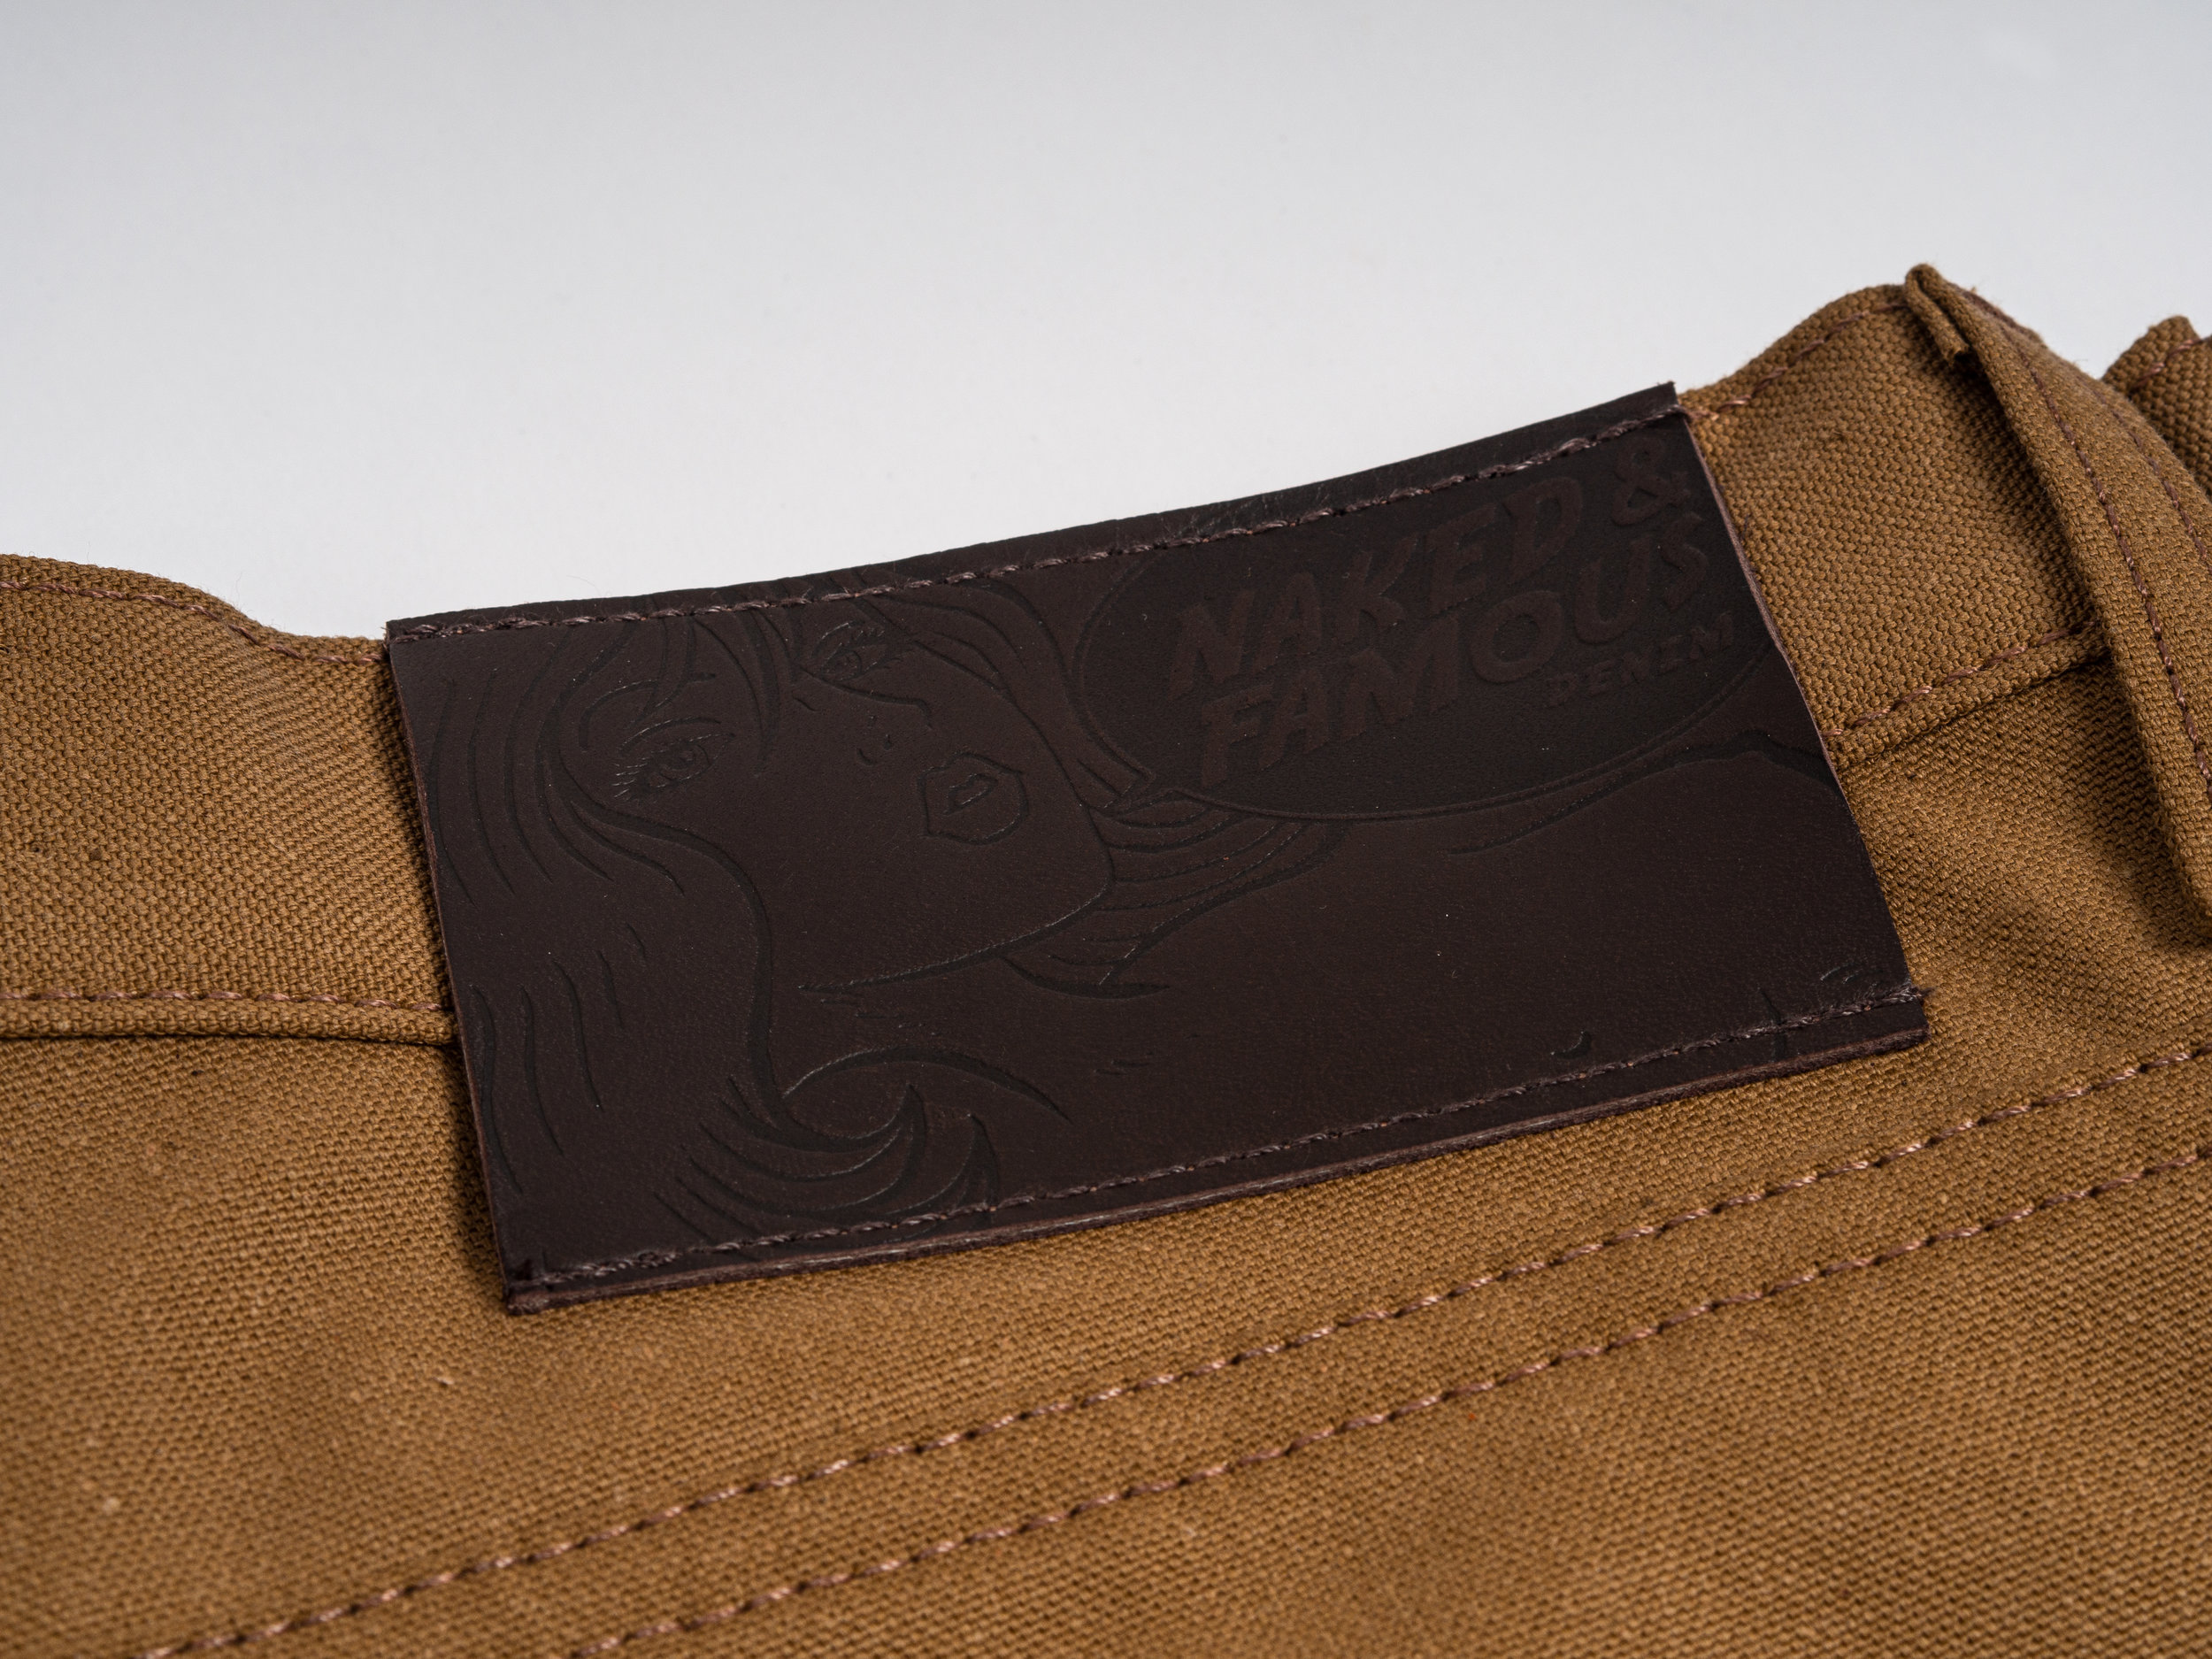 NAKED & FAMOUS DUCK CANVAS SELVEDGE - The Duck Canvas Selvedge uses a tightly woven 10oz plain weave Japanese cotton, which is water resistant and hard-wearing. Duck canvas predates traditional denim and is widely considered to be the original workwear fabric.